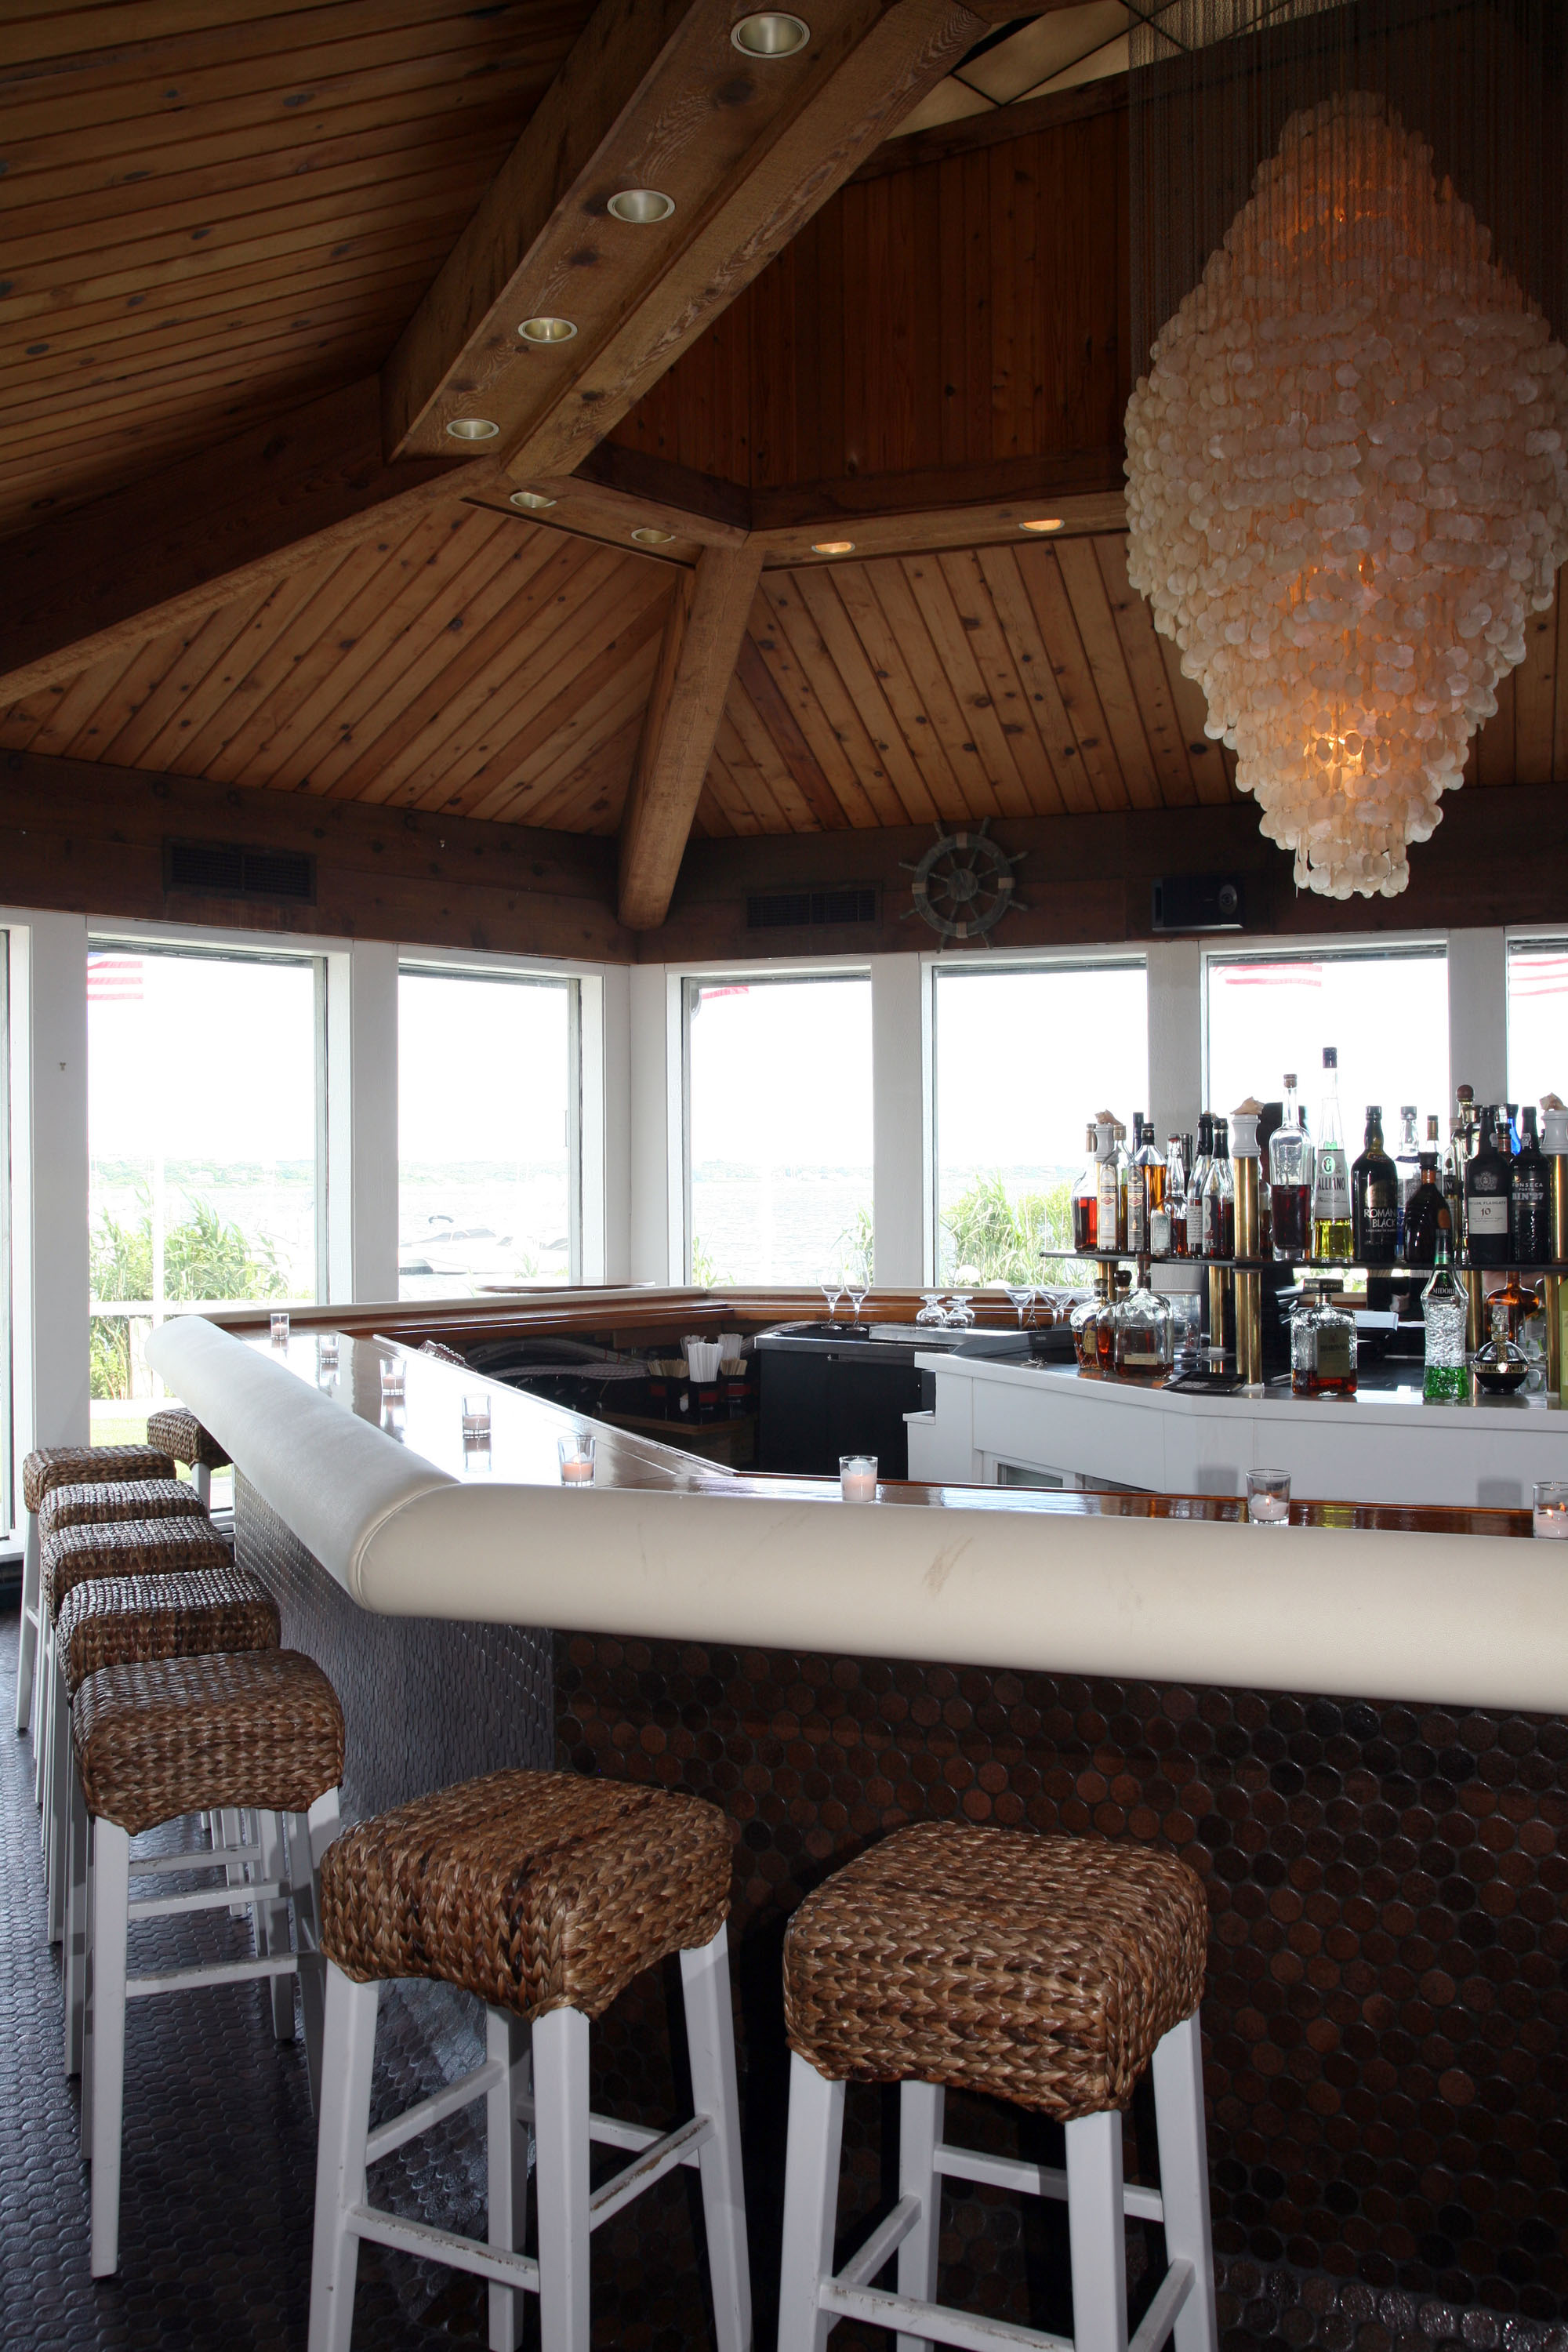 The Barracuda Bar at Montauk Yacht Club & Resort